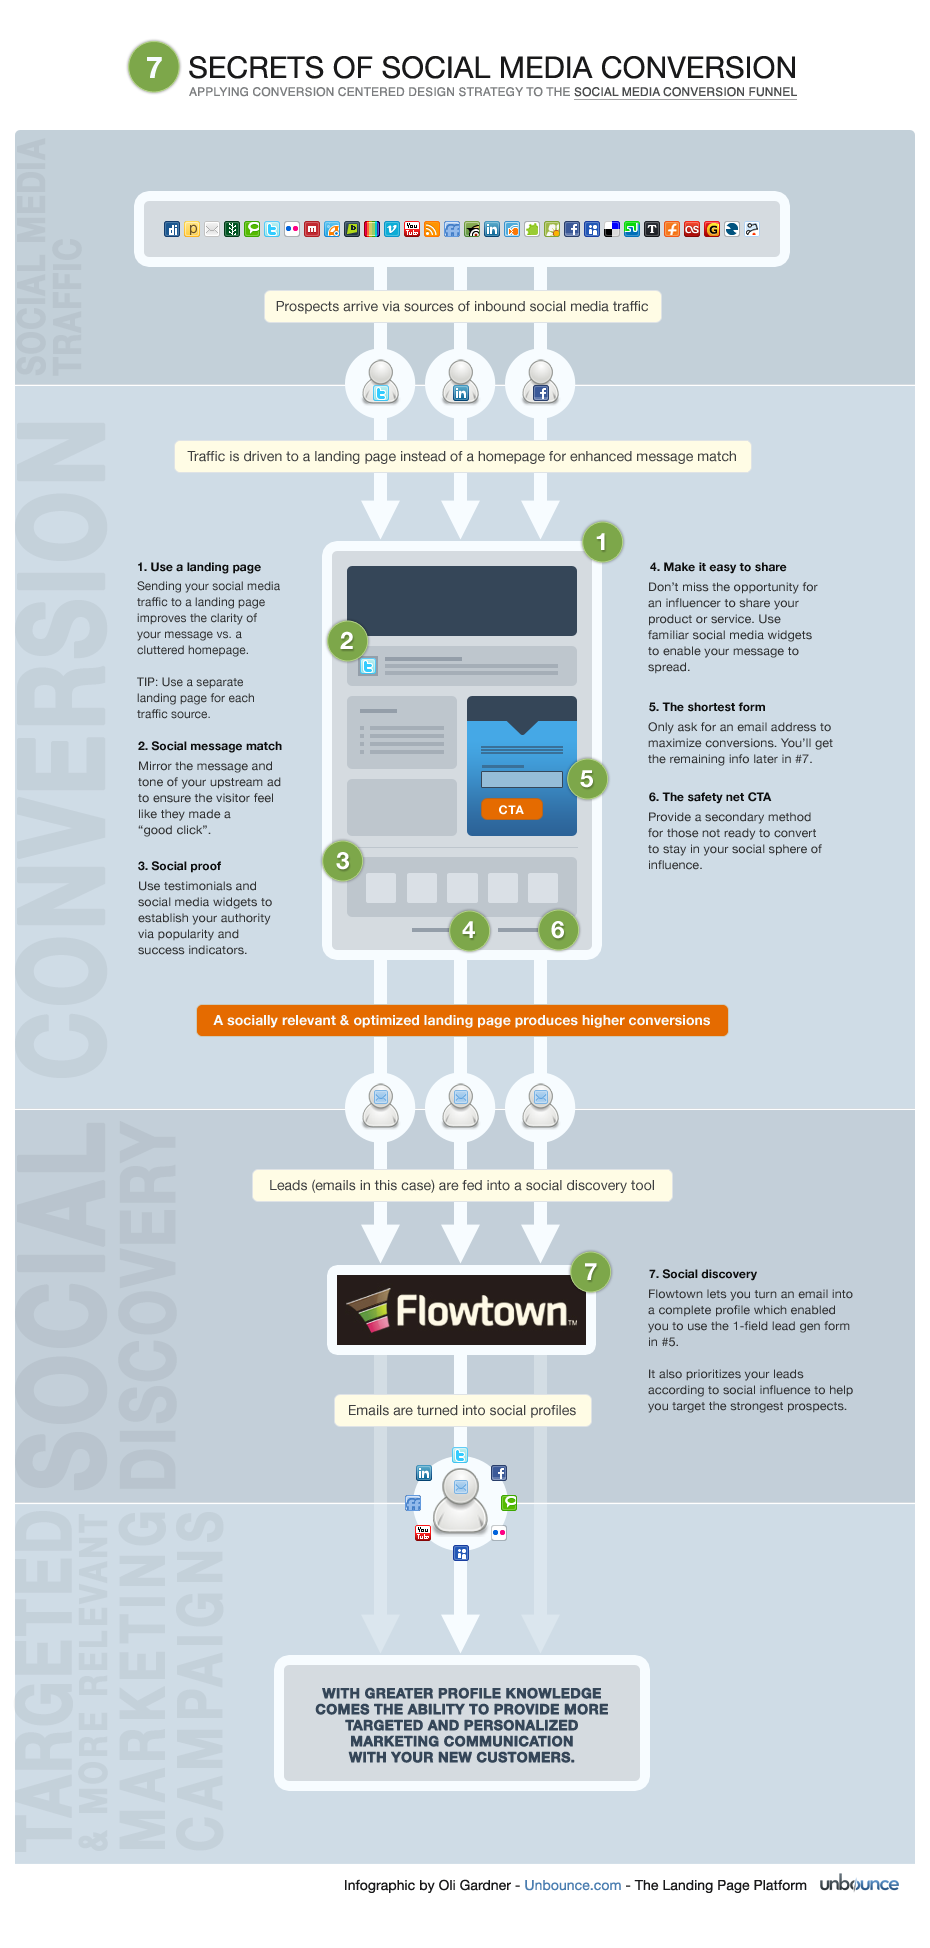 http://unbounce.com/photos/7-secrets-of-social-media-conversion-infographic1.png